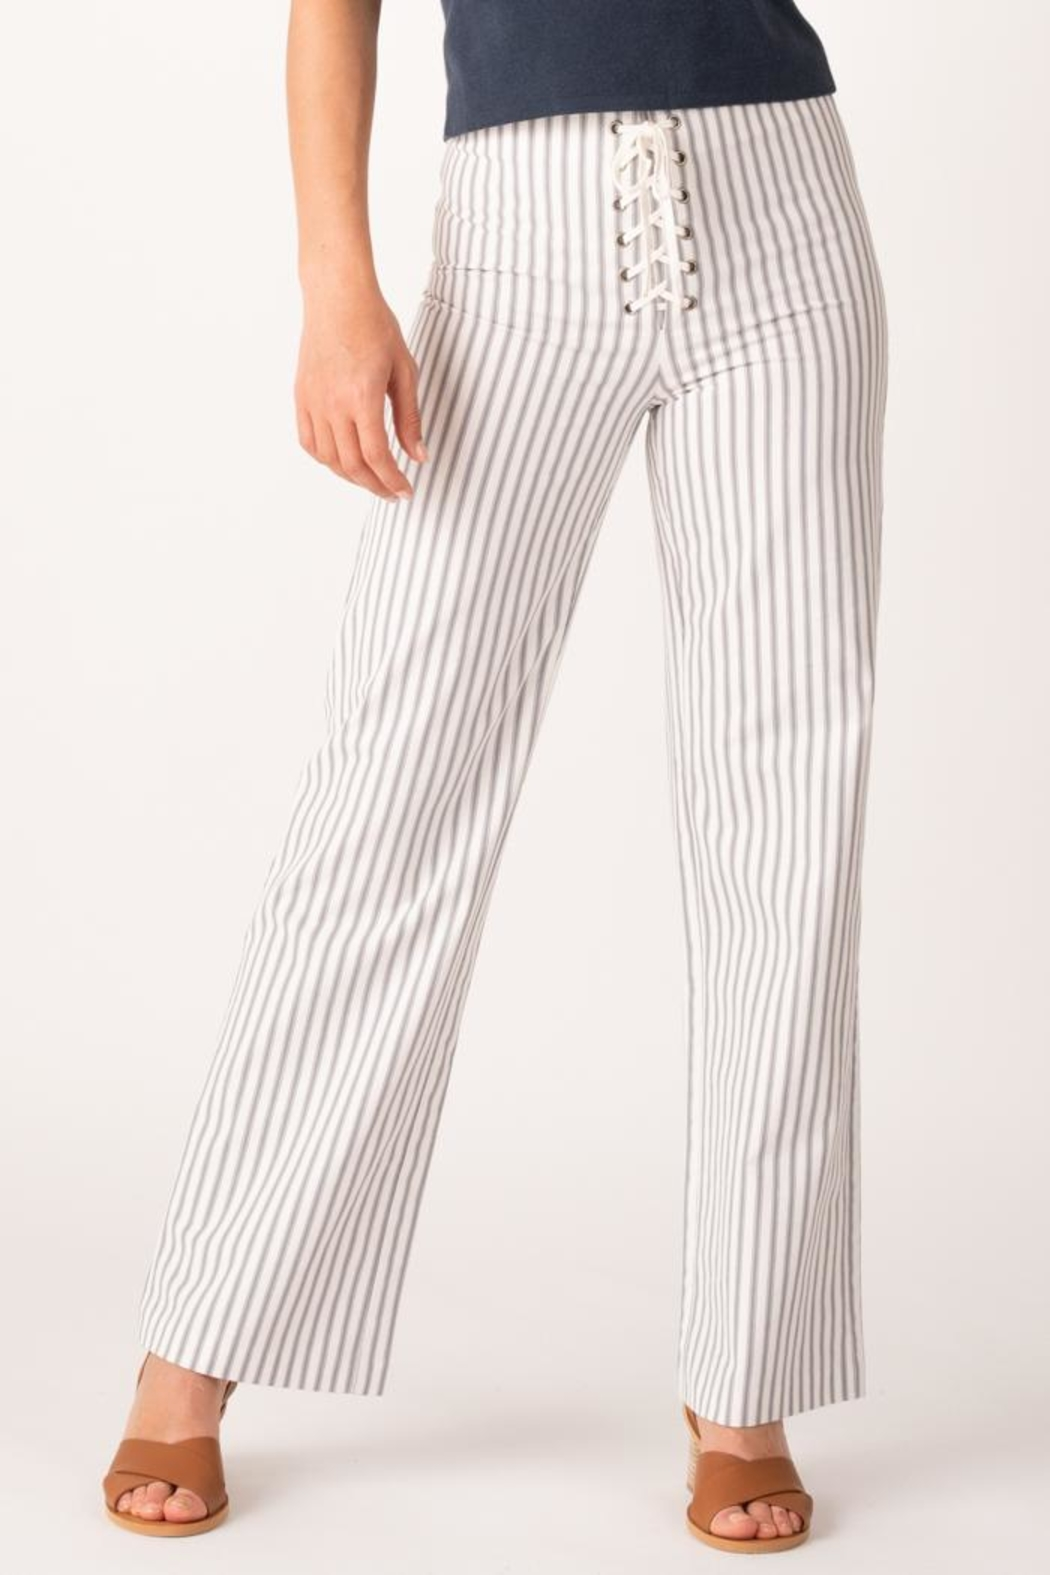 Margaret O'Leary Lace Up Pant - Front Cropped Image